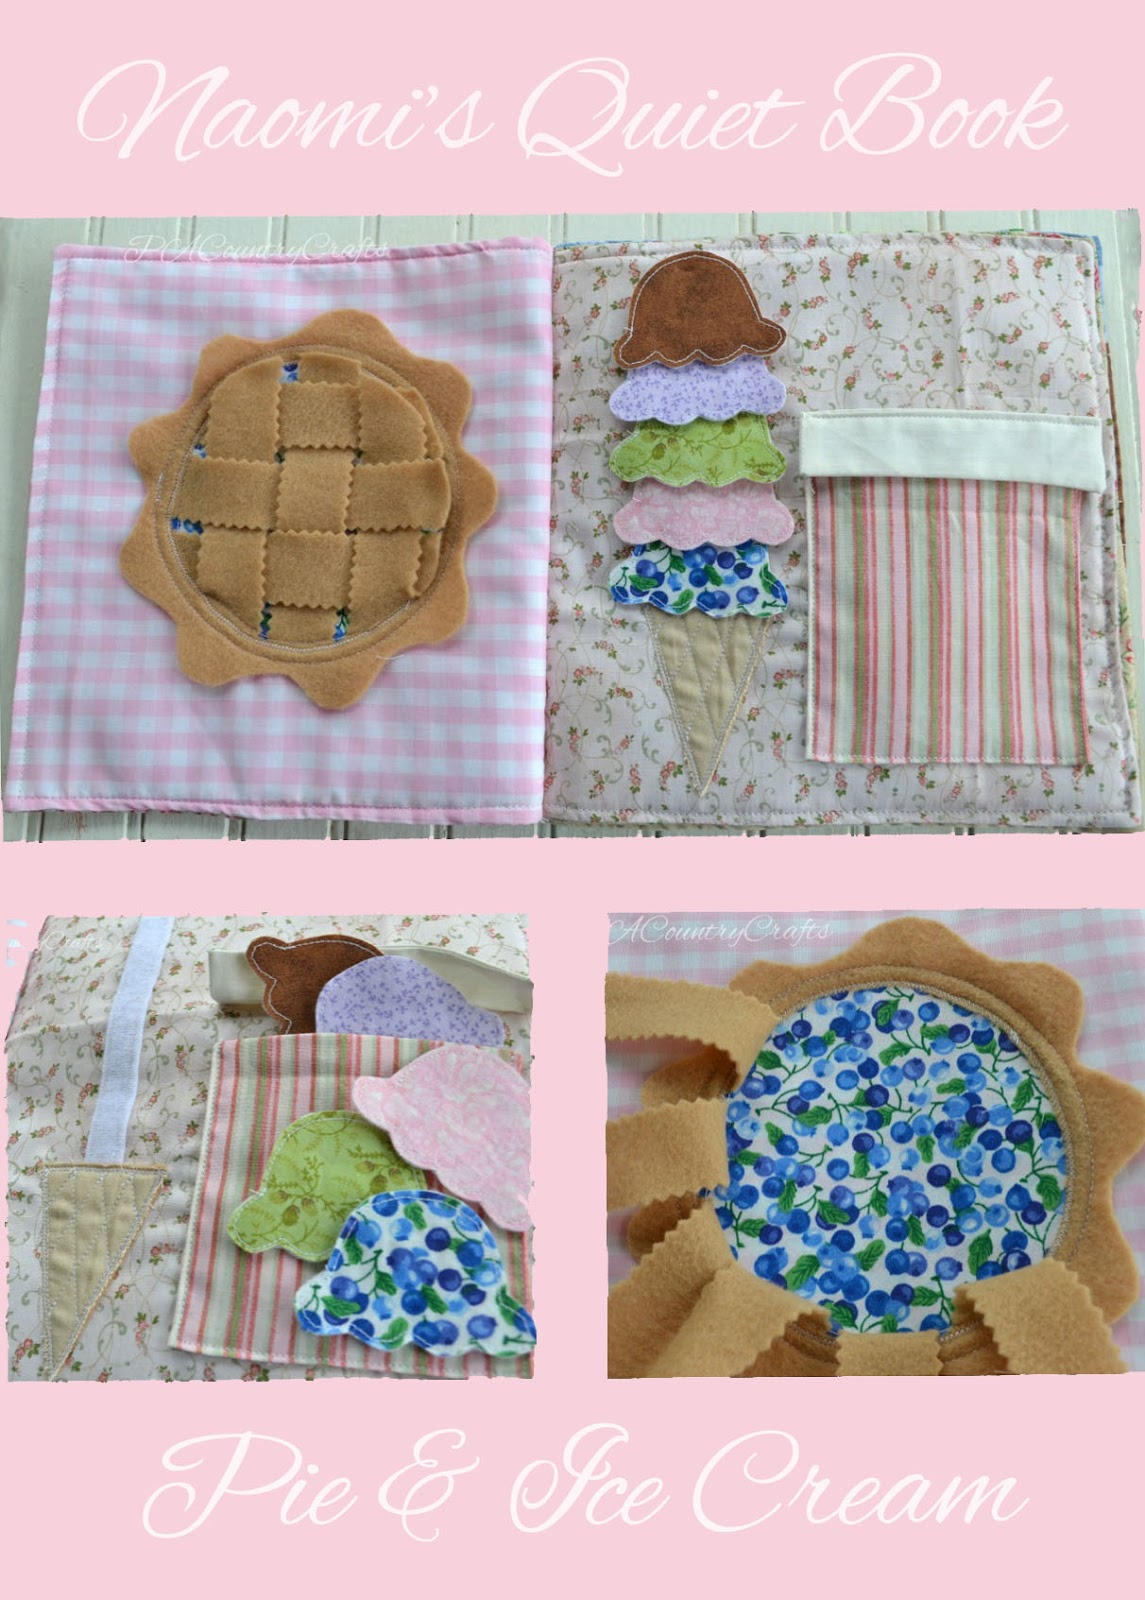 Pie & Ice Cream Quiet Book Page